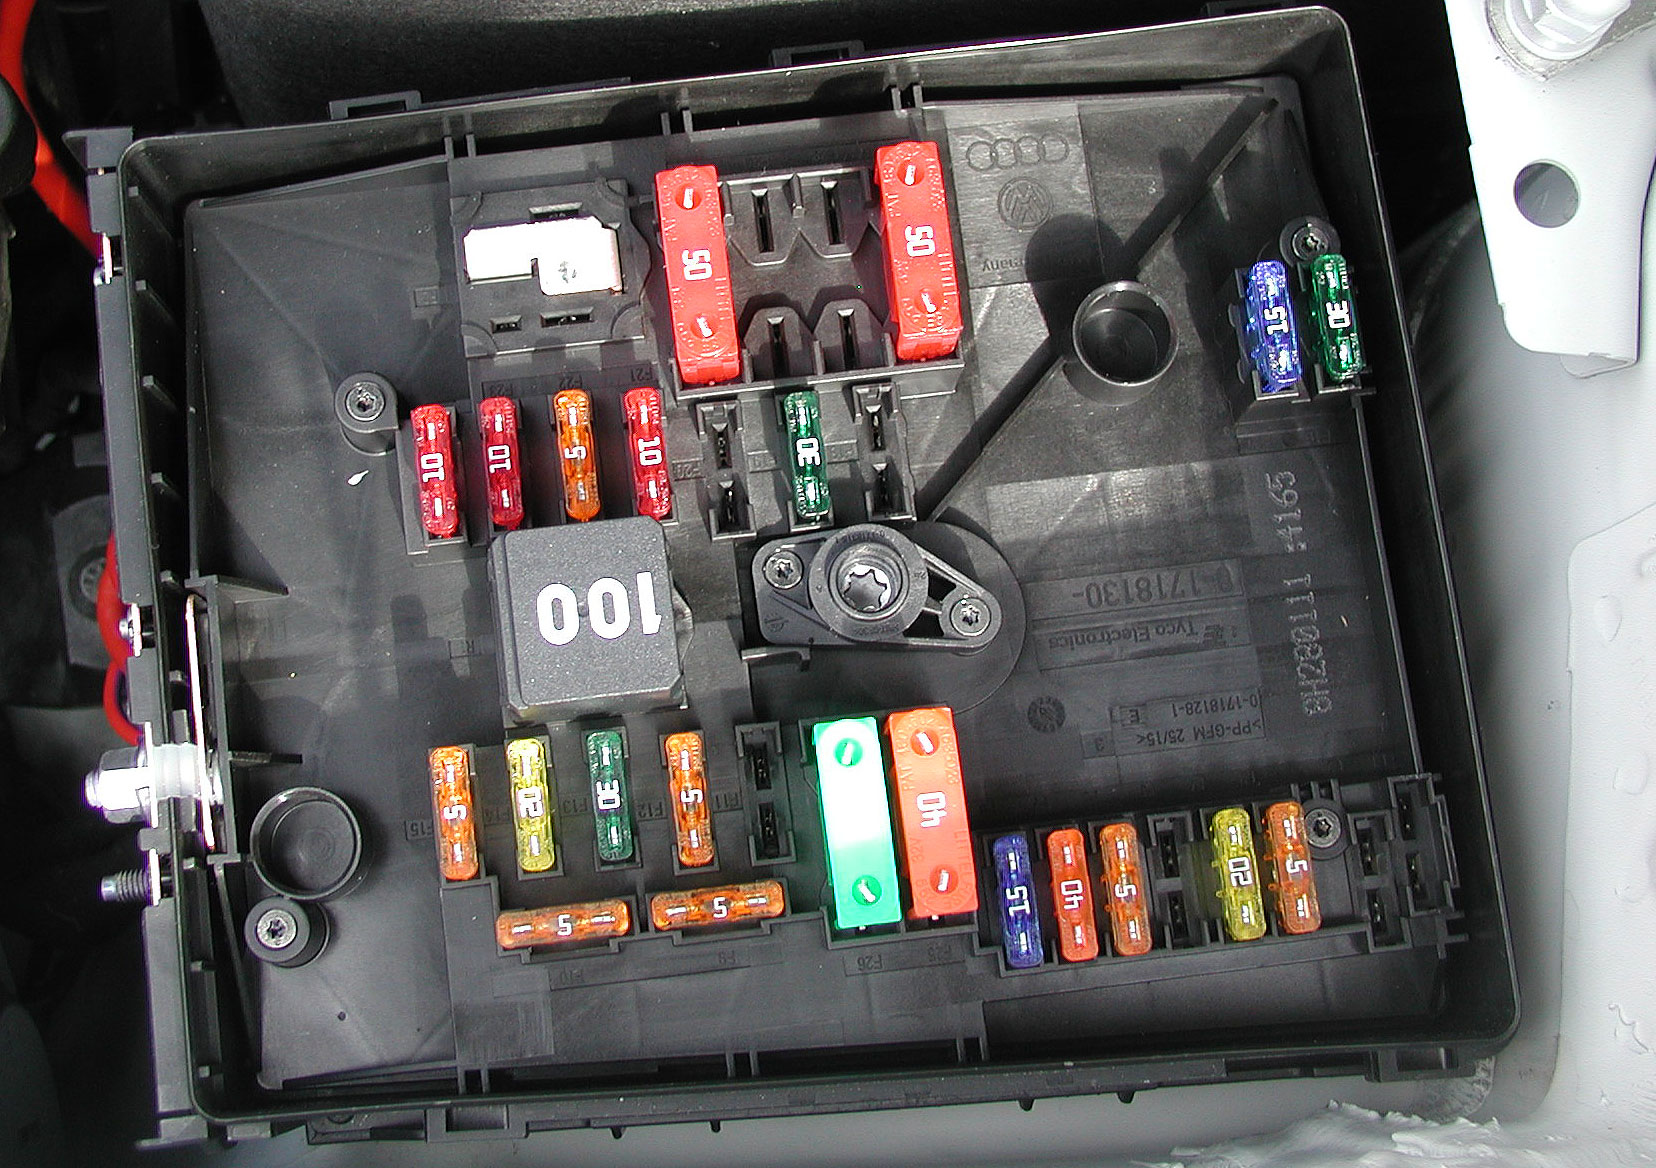 engineFuses2 golf mkv 1 9 tdi rcd 310 battery drain the volkswagen club of vw golf fuse box diagram at crackthecode.co